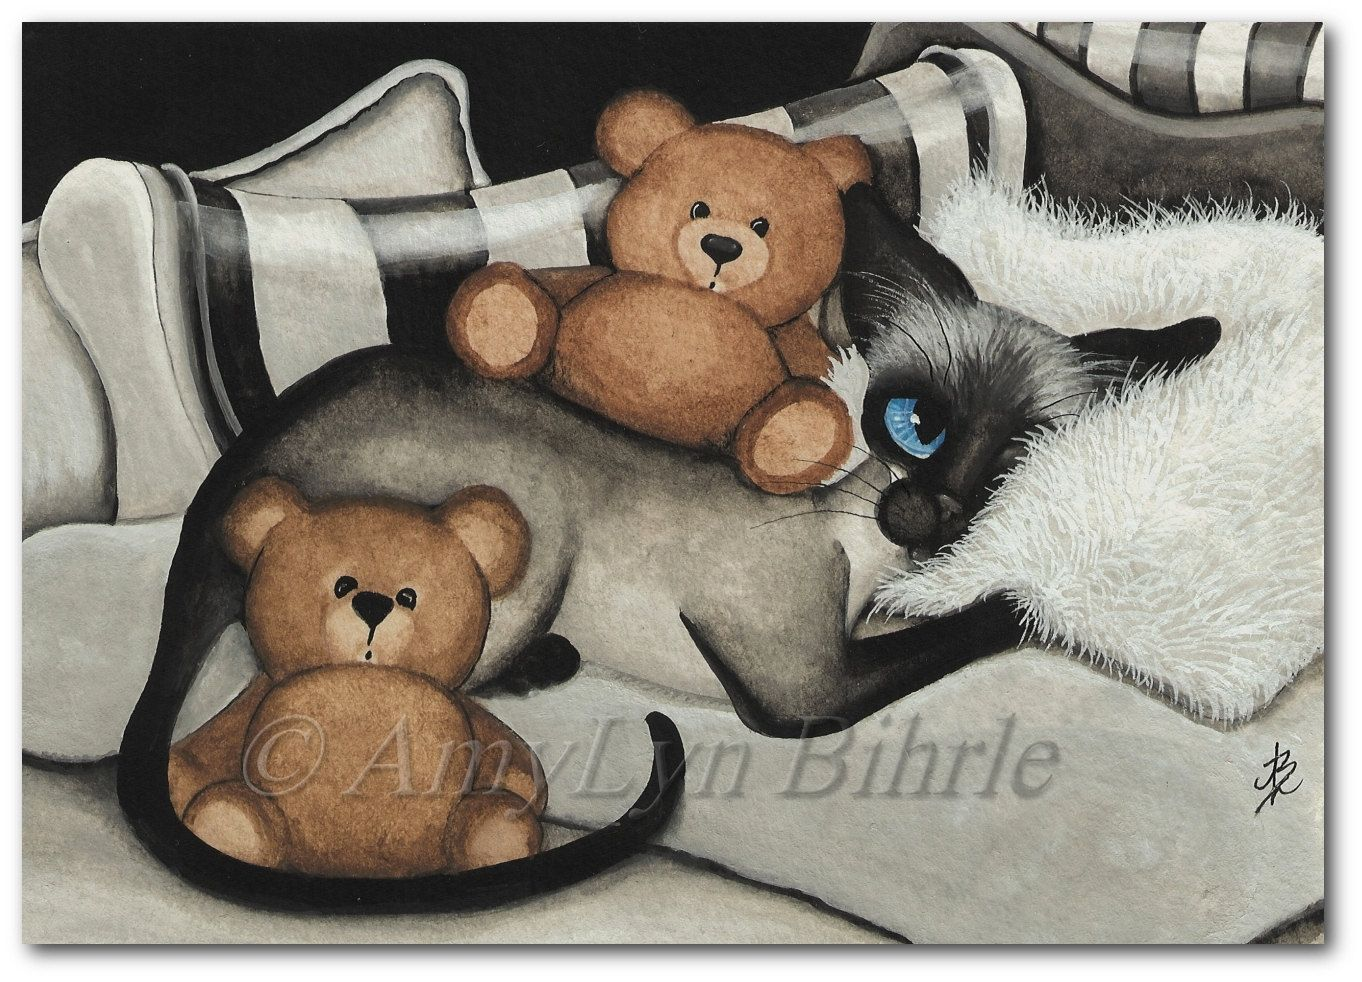 Siamese Cat Comfort Teddy Bears - Art Prints & by Bihrle ck347 door AmyLynBihrle op Etsy https://www.etsy.com/nl/listing/163425434/siamese-cat-comfort-teddy-bears-art